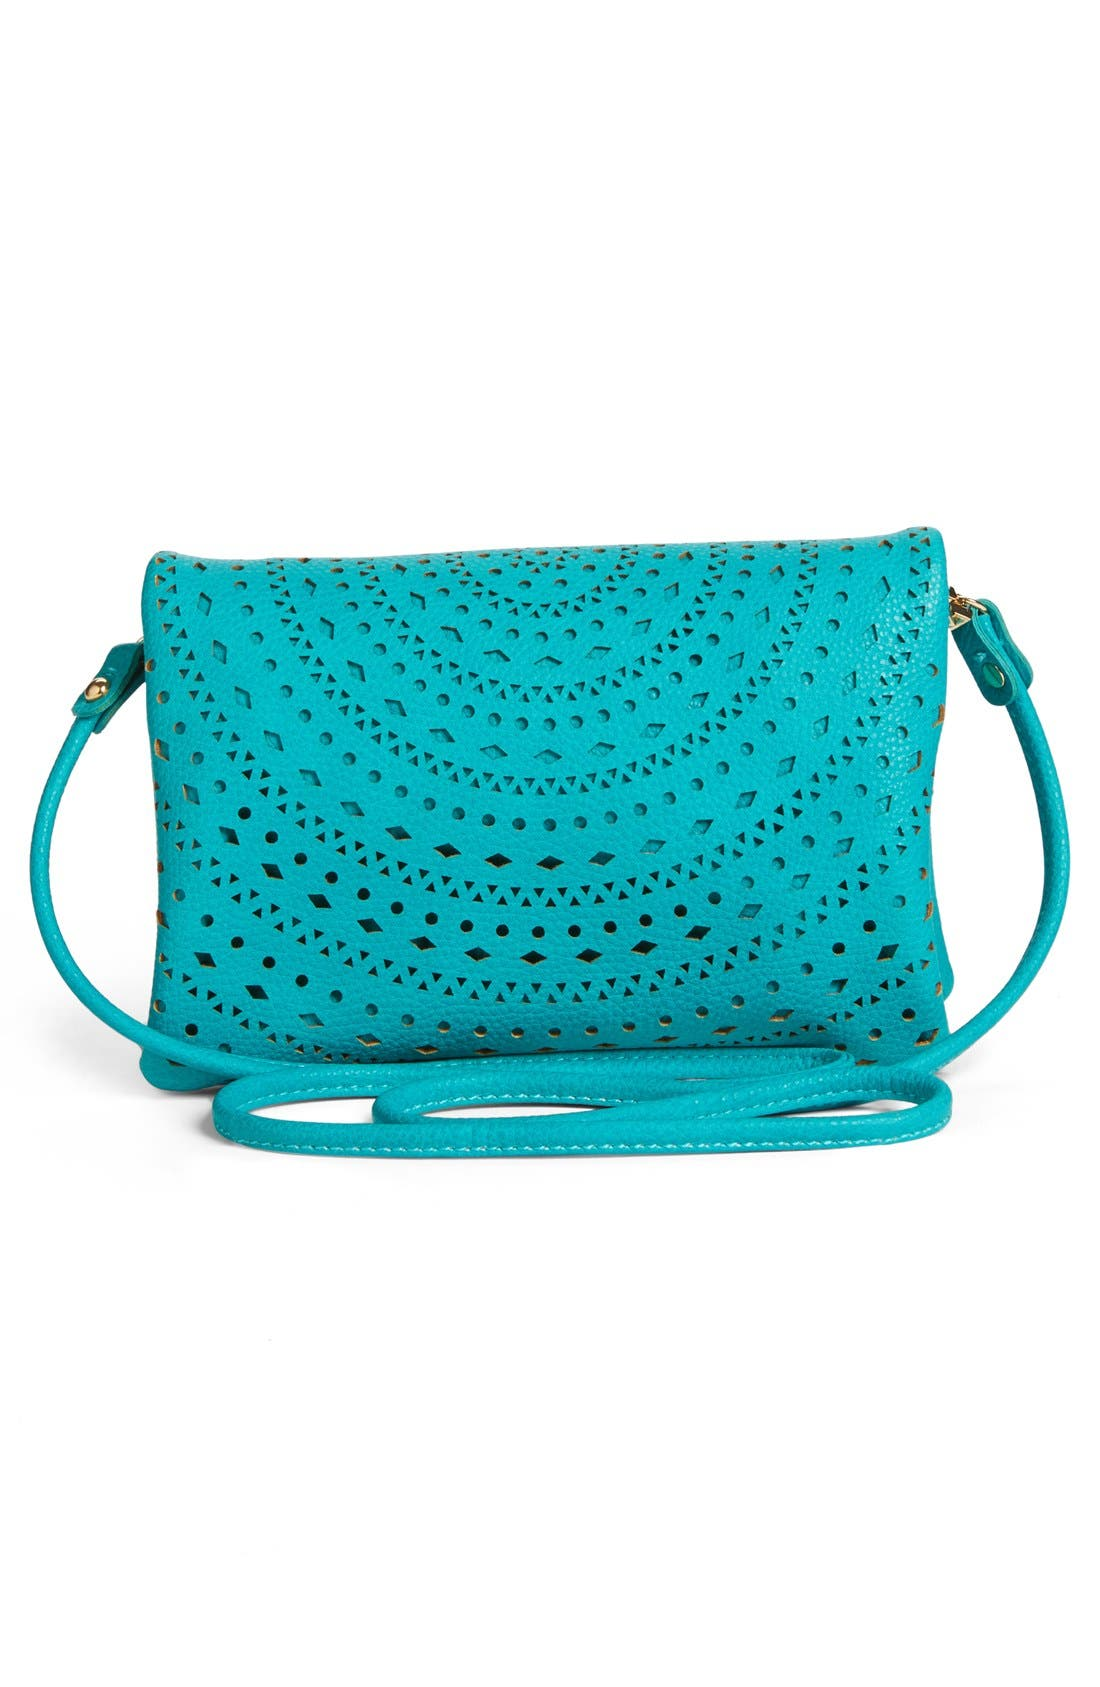 Alternate Image 2  - Street Level Perforated Faux Leather Mini Crossbody Bag